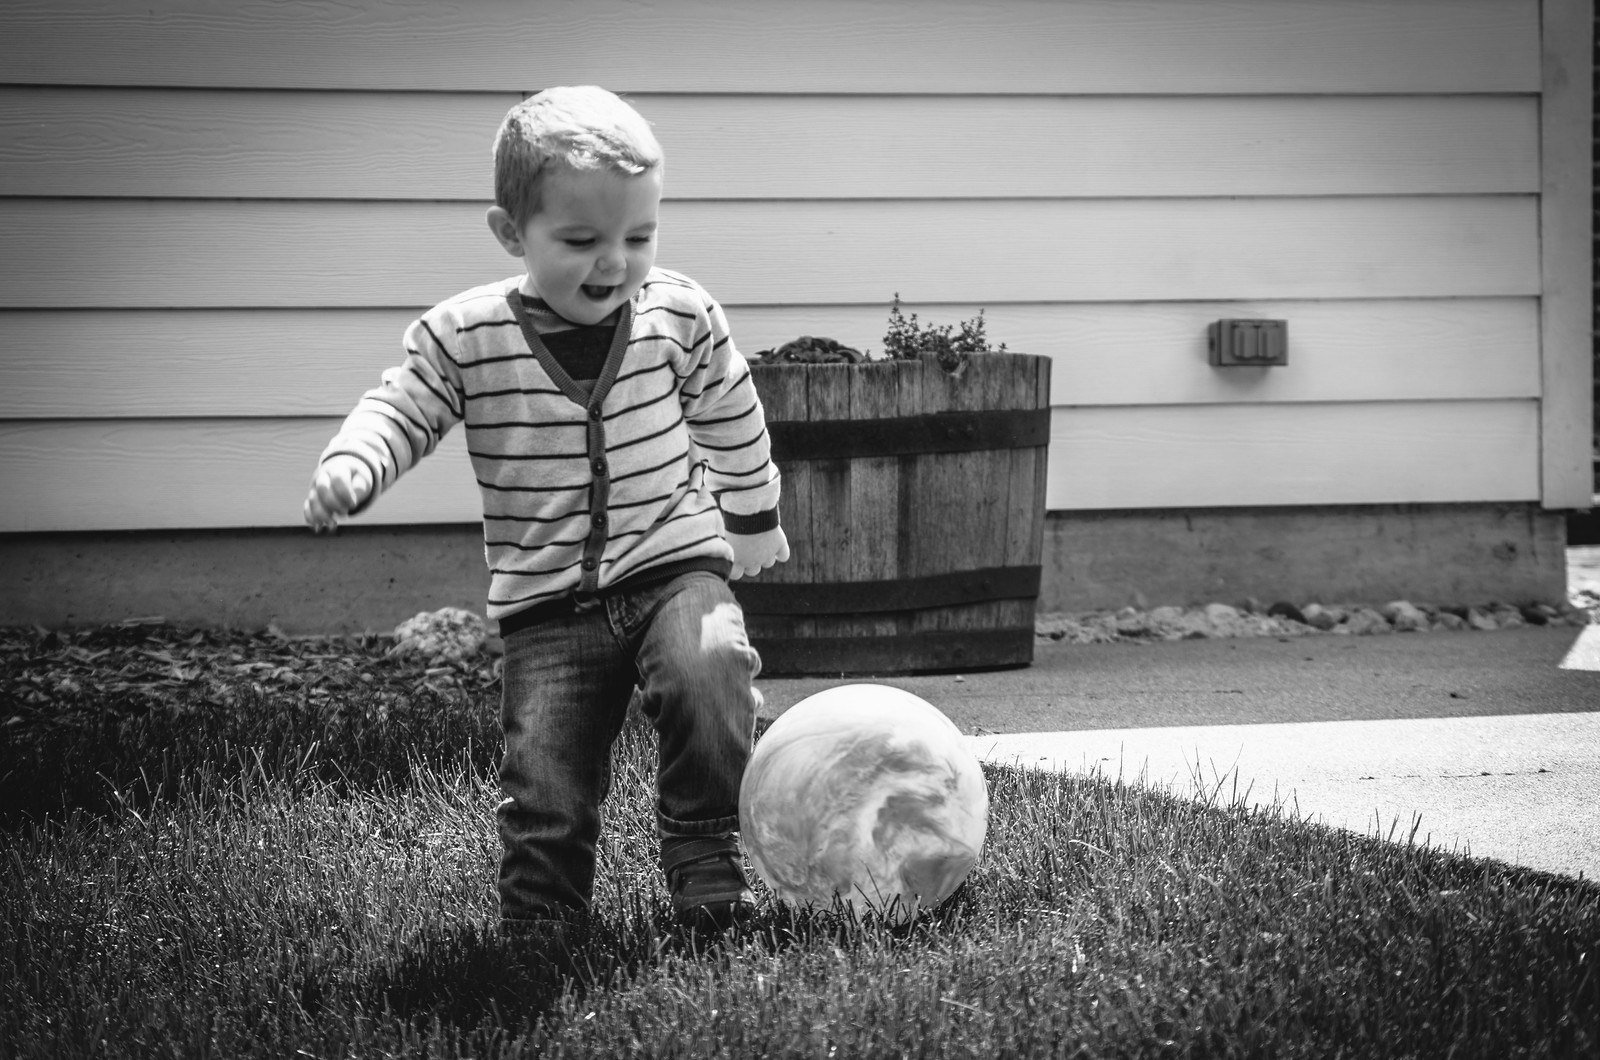 Ezra and the ball